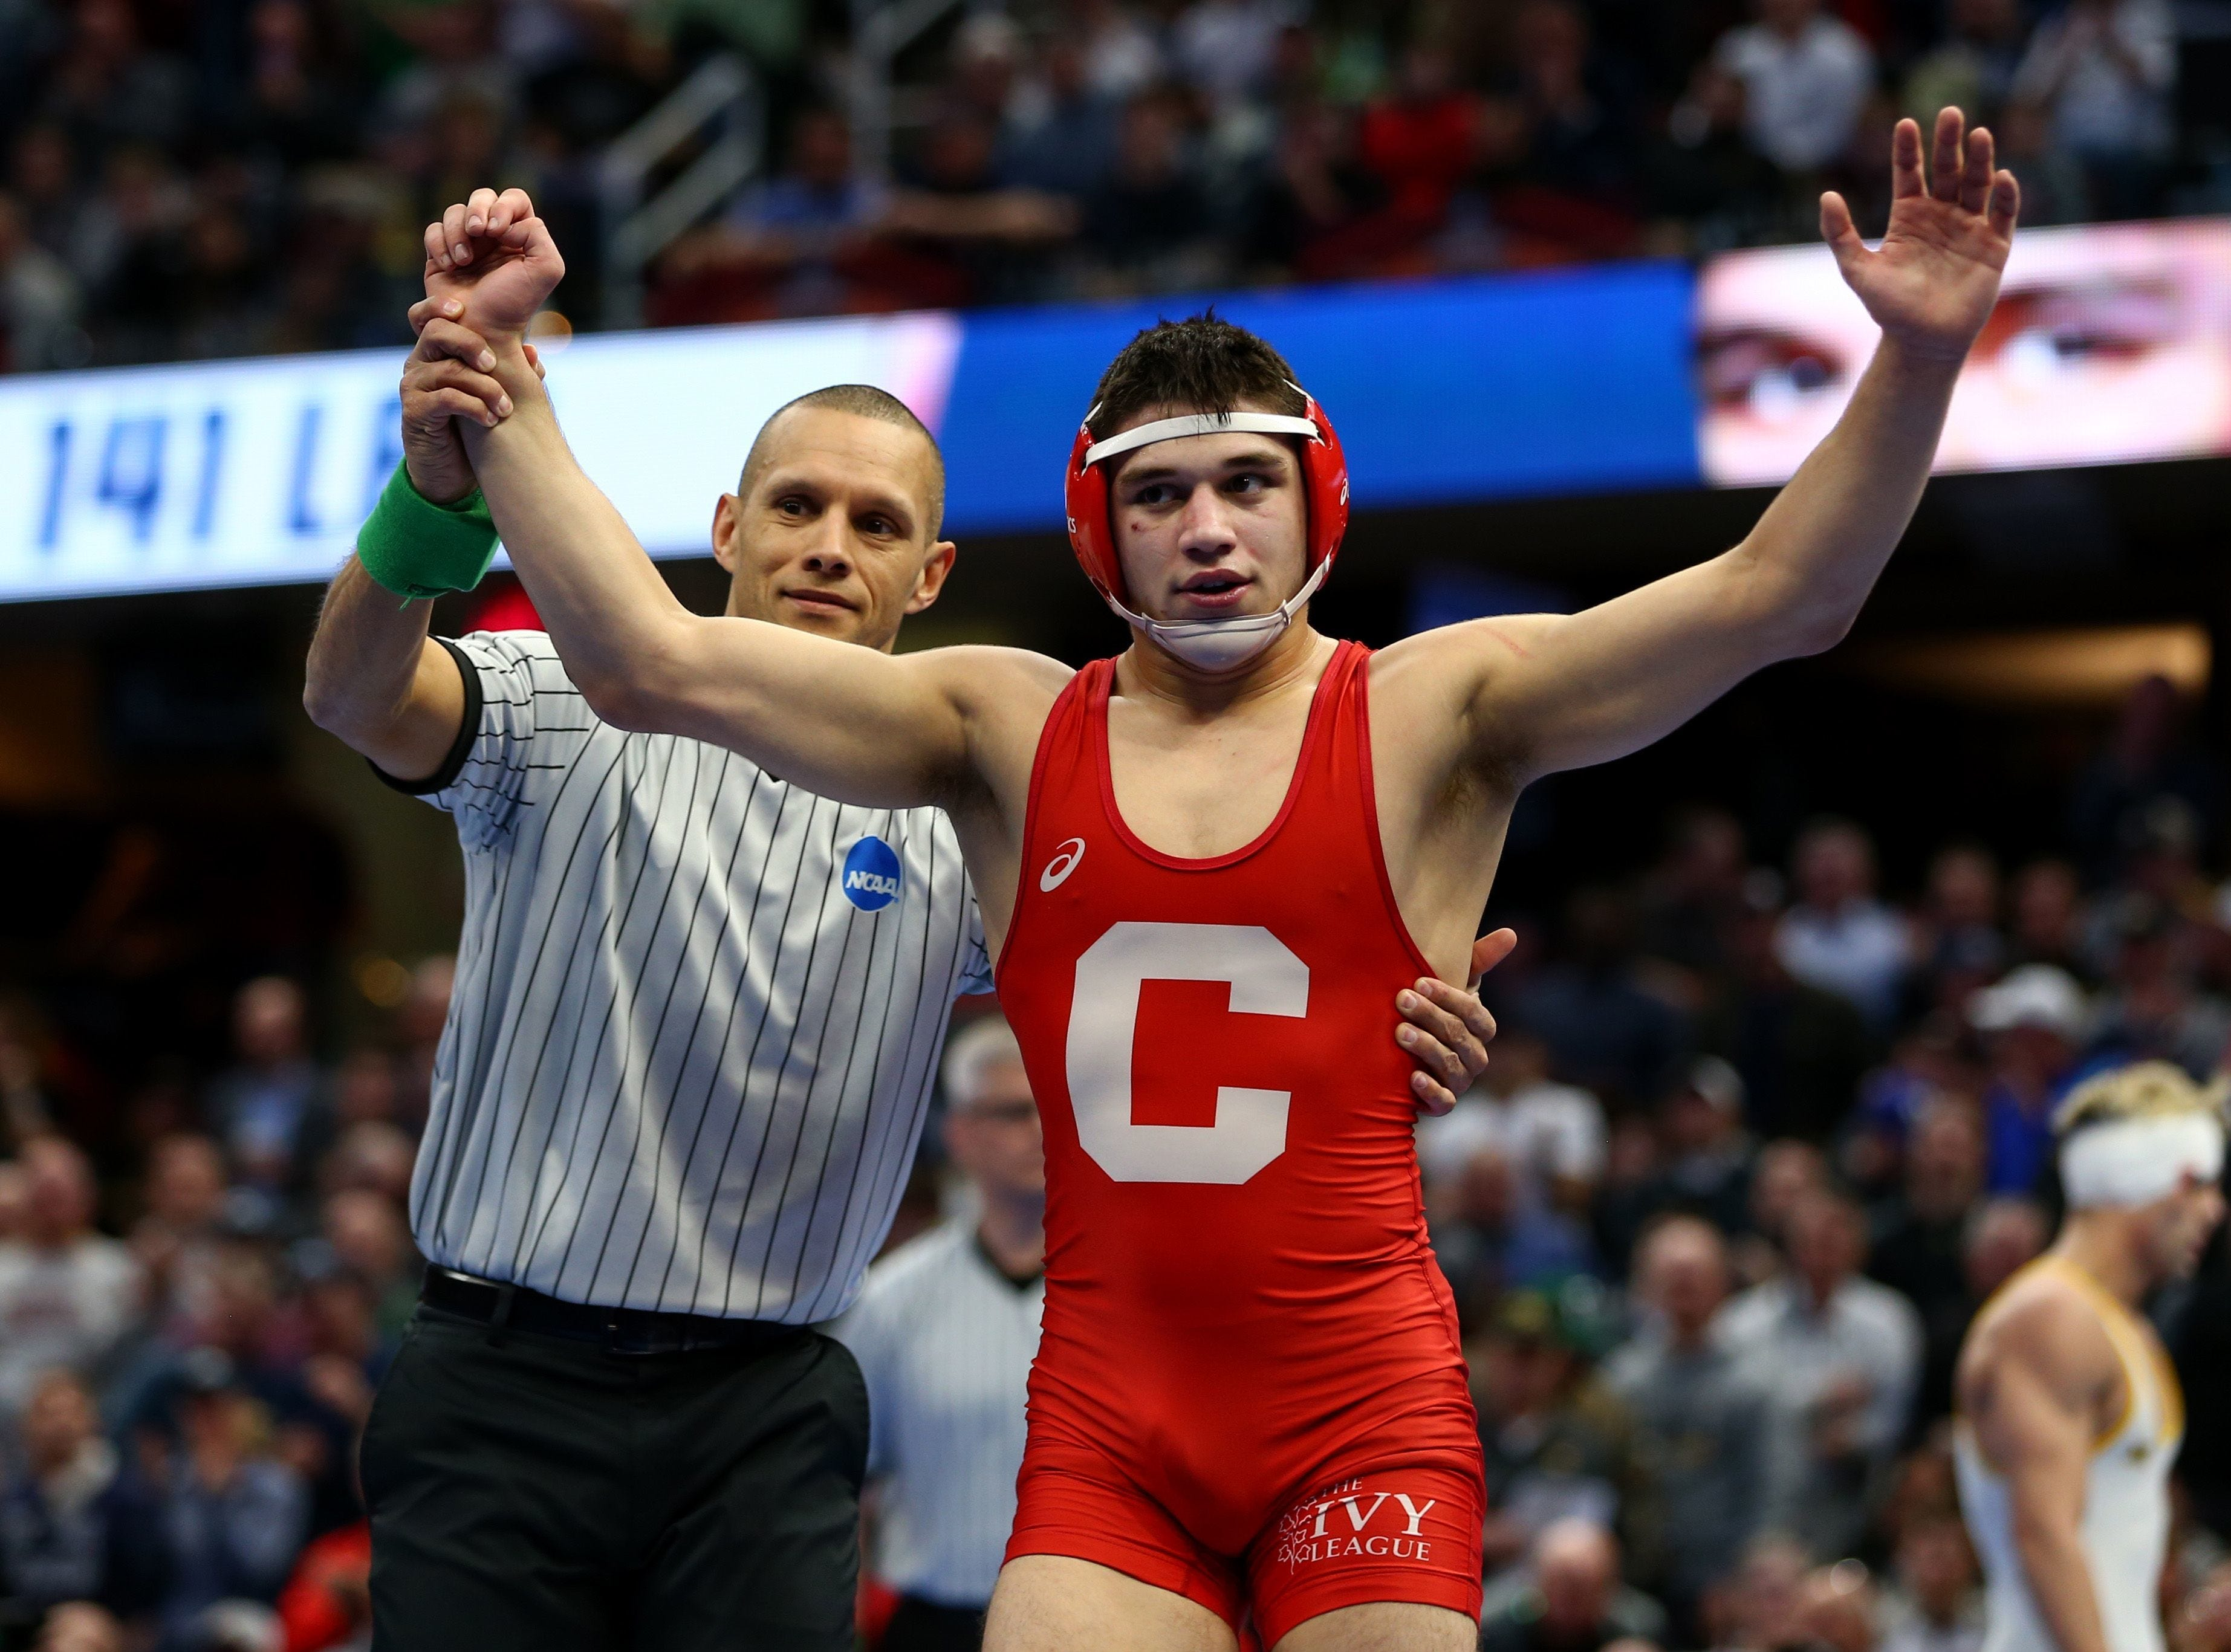 Mar 17, 2018; Cleveland, OH, USA; Cornell wrester Yianni Diakomihalis reacts after defeating Wyoming Cowboys wrestler Bryce Meredith during the NCAA Wrestling DI Wrestling Championships at Quicken Loans Arena.